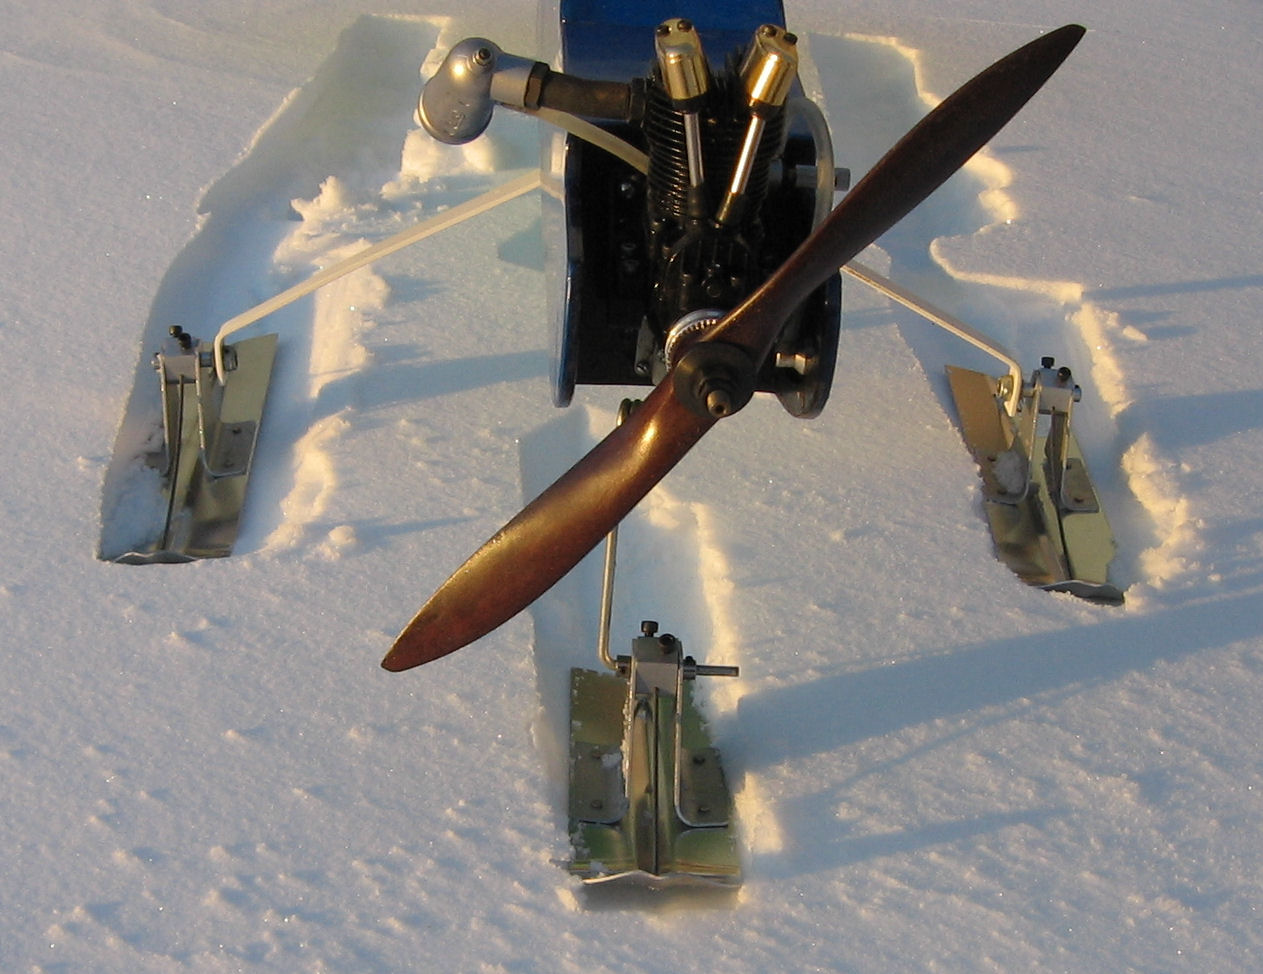 Standard Tricycle Snow Skis for R/C model airplanes